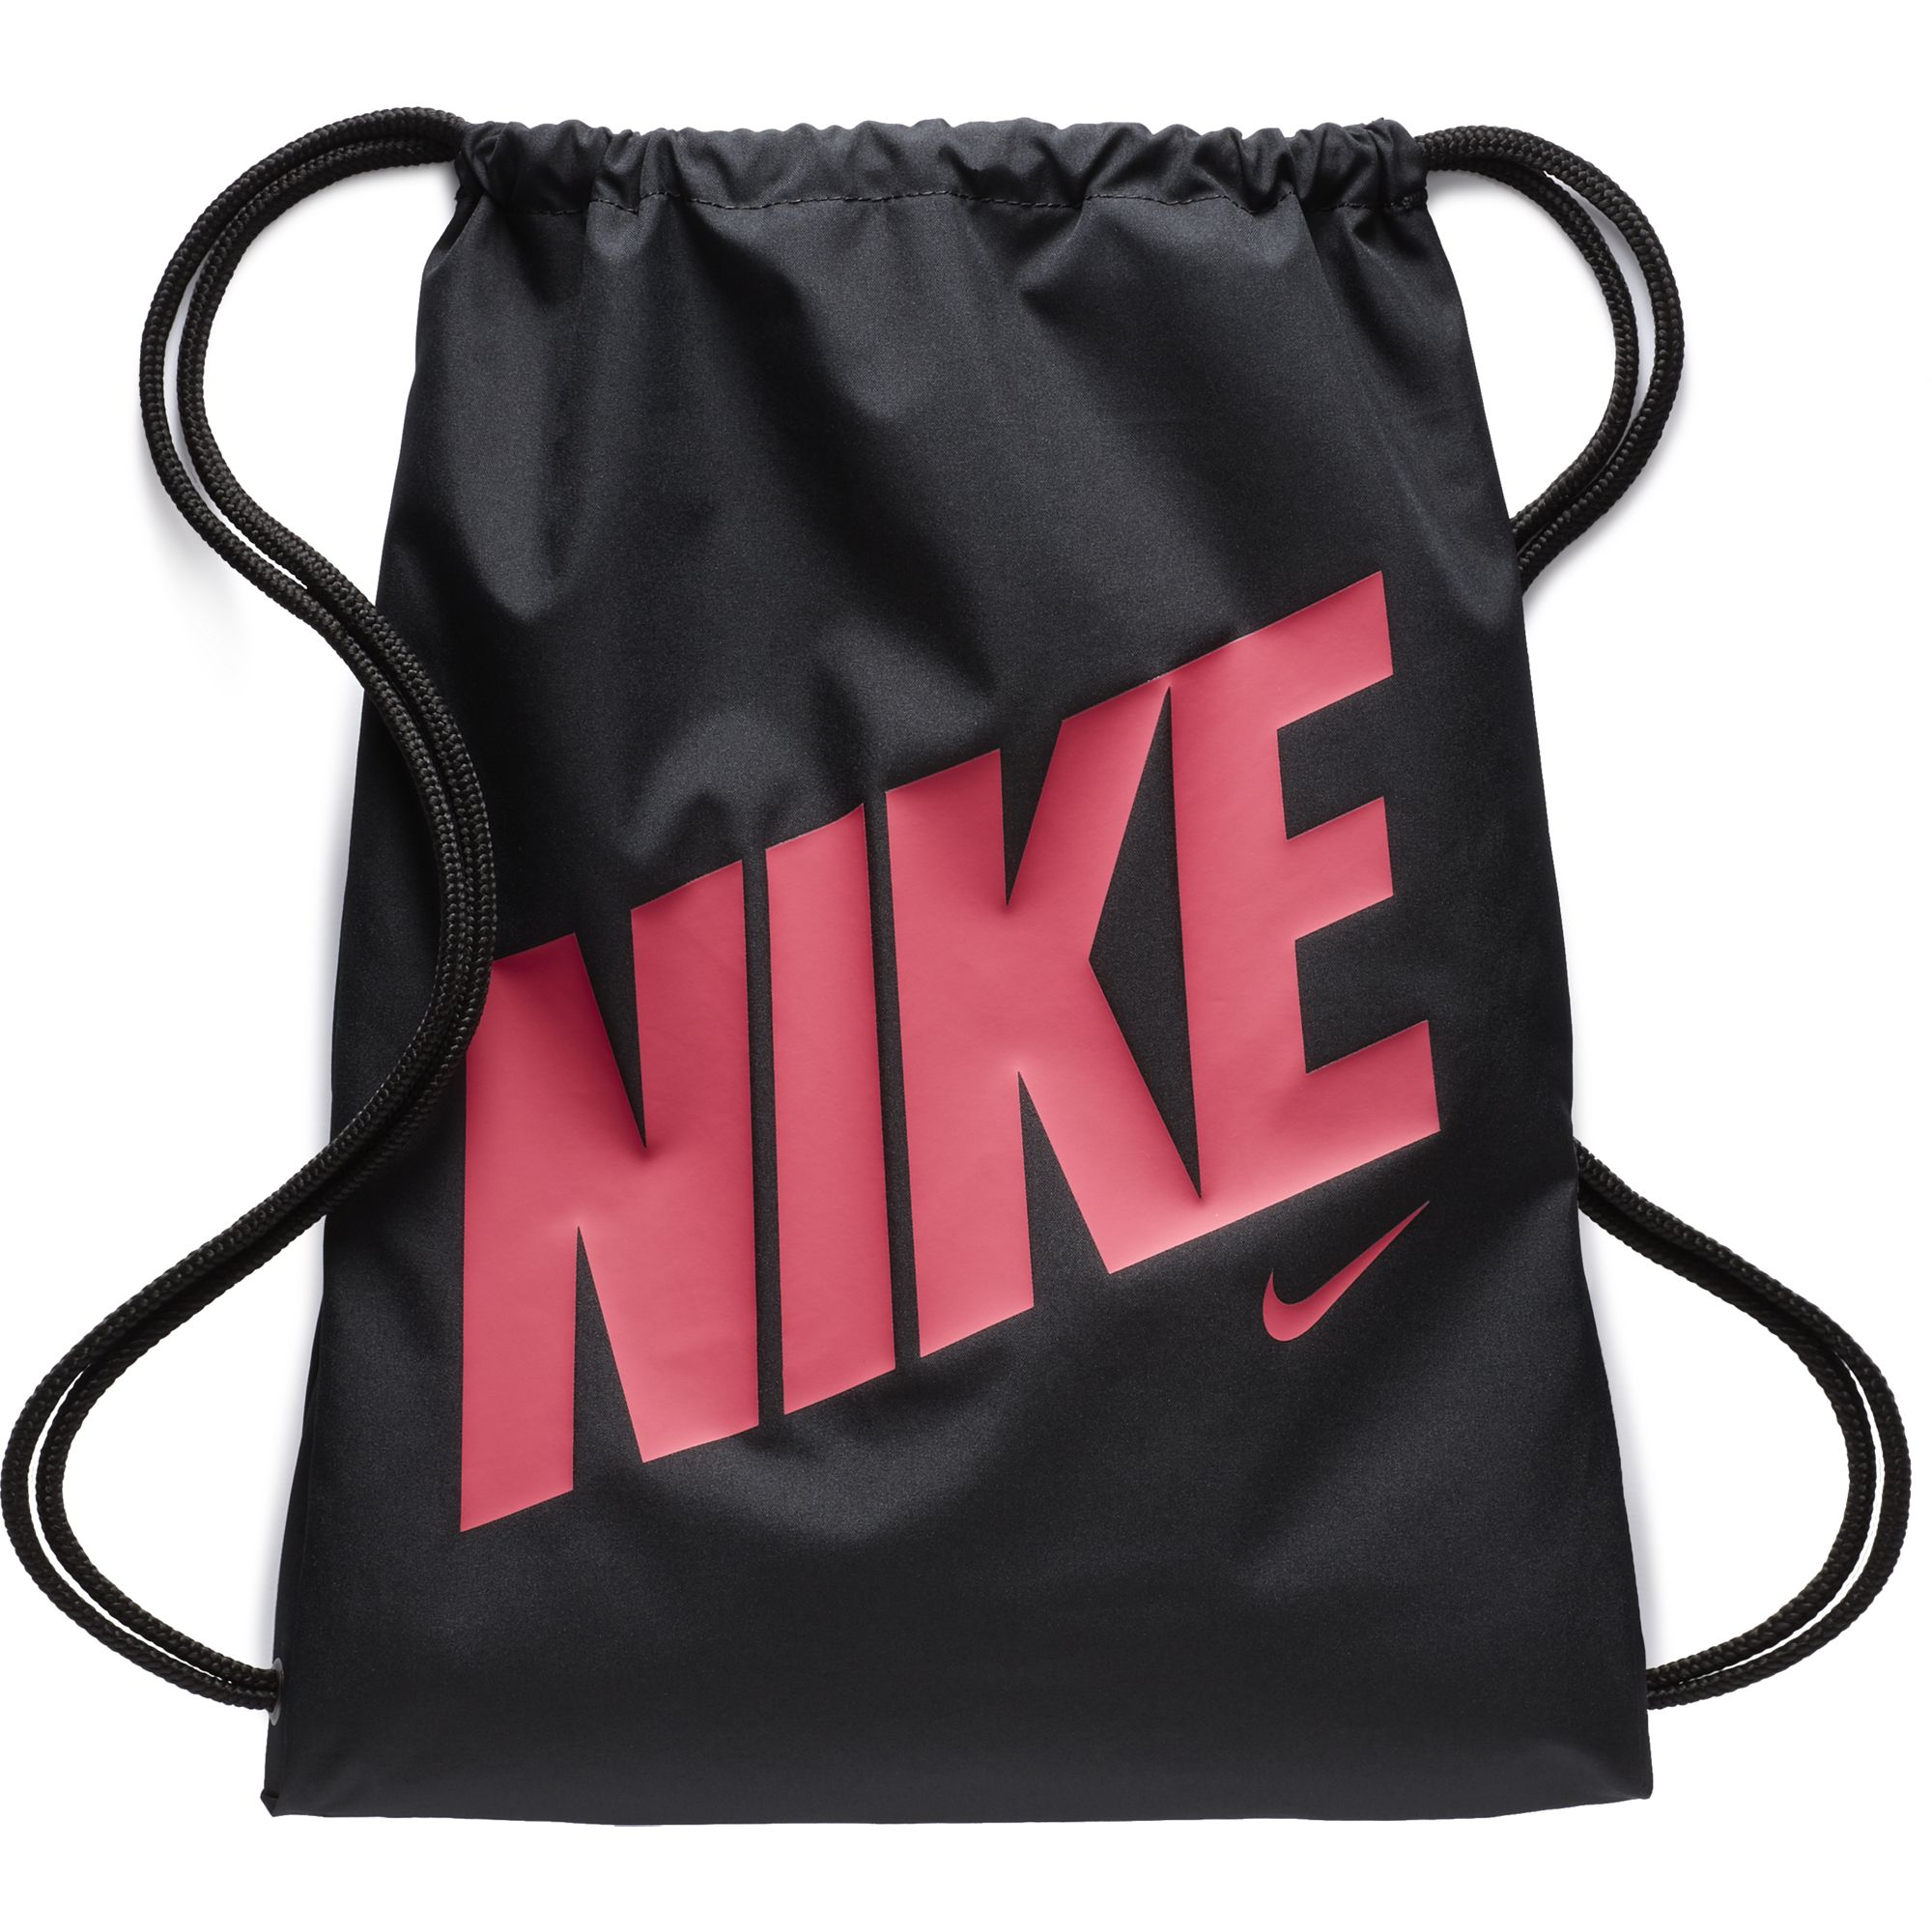 Youth Graphic Gymsack, Black/Pink, swatch